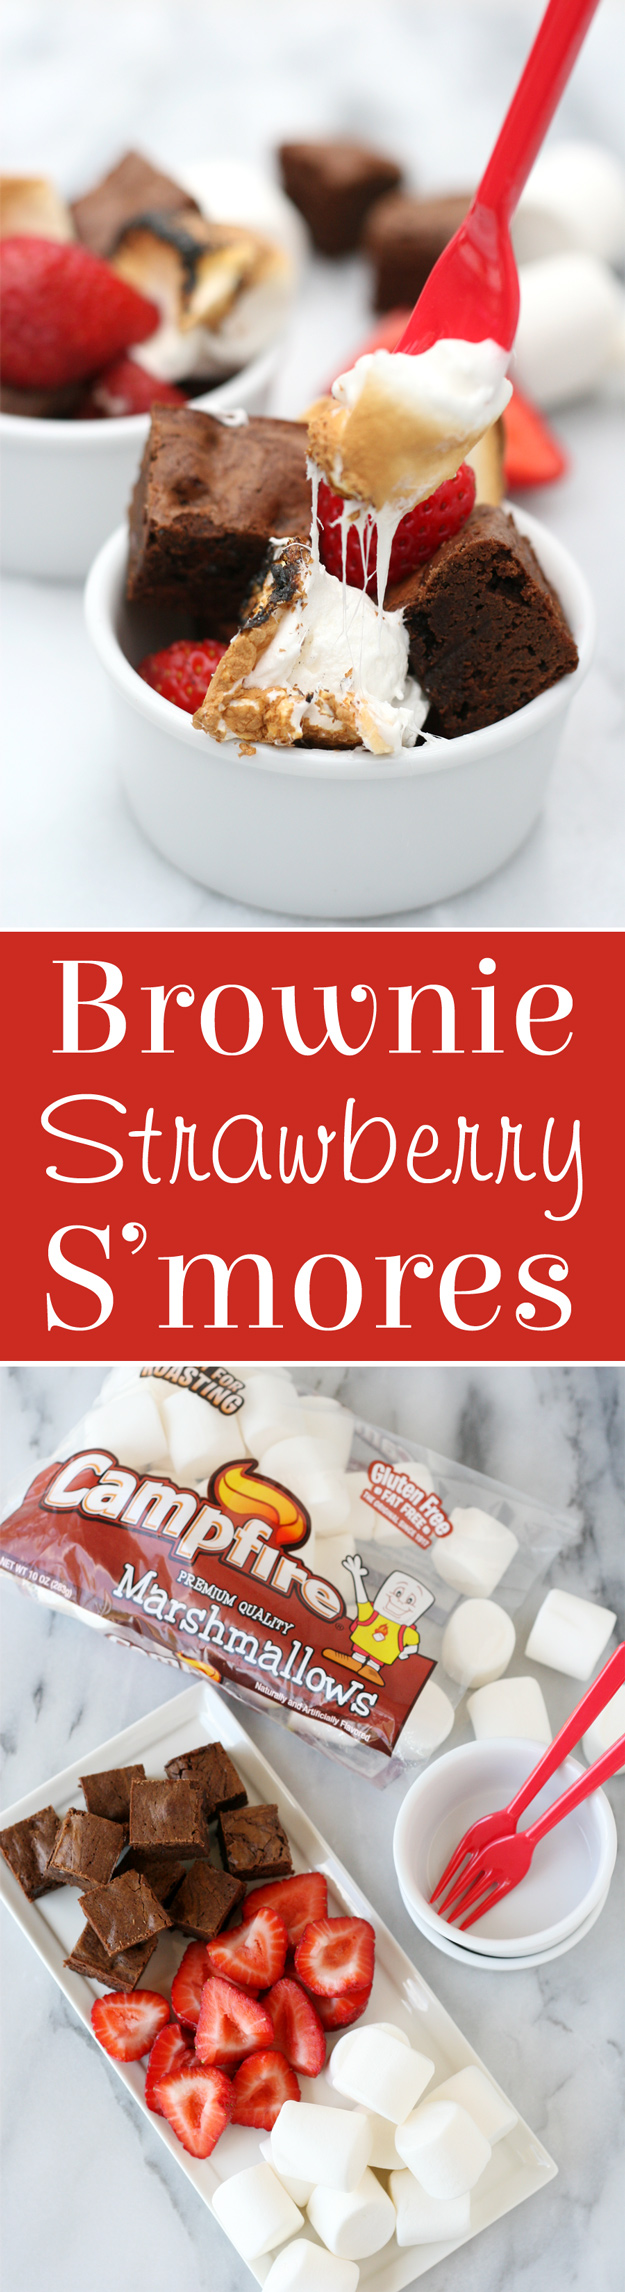 Brownie Strawberry S'mores | Create the best s'mores treat ever with fudge brownie bites, fresh strawberries and roasted marshmallows... YUM!